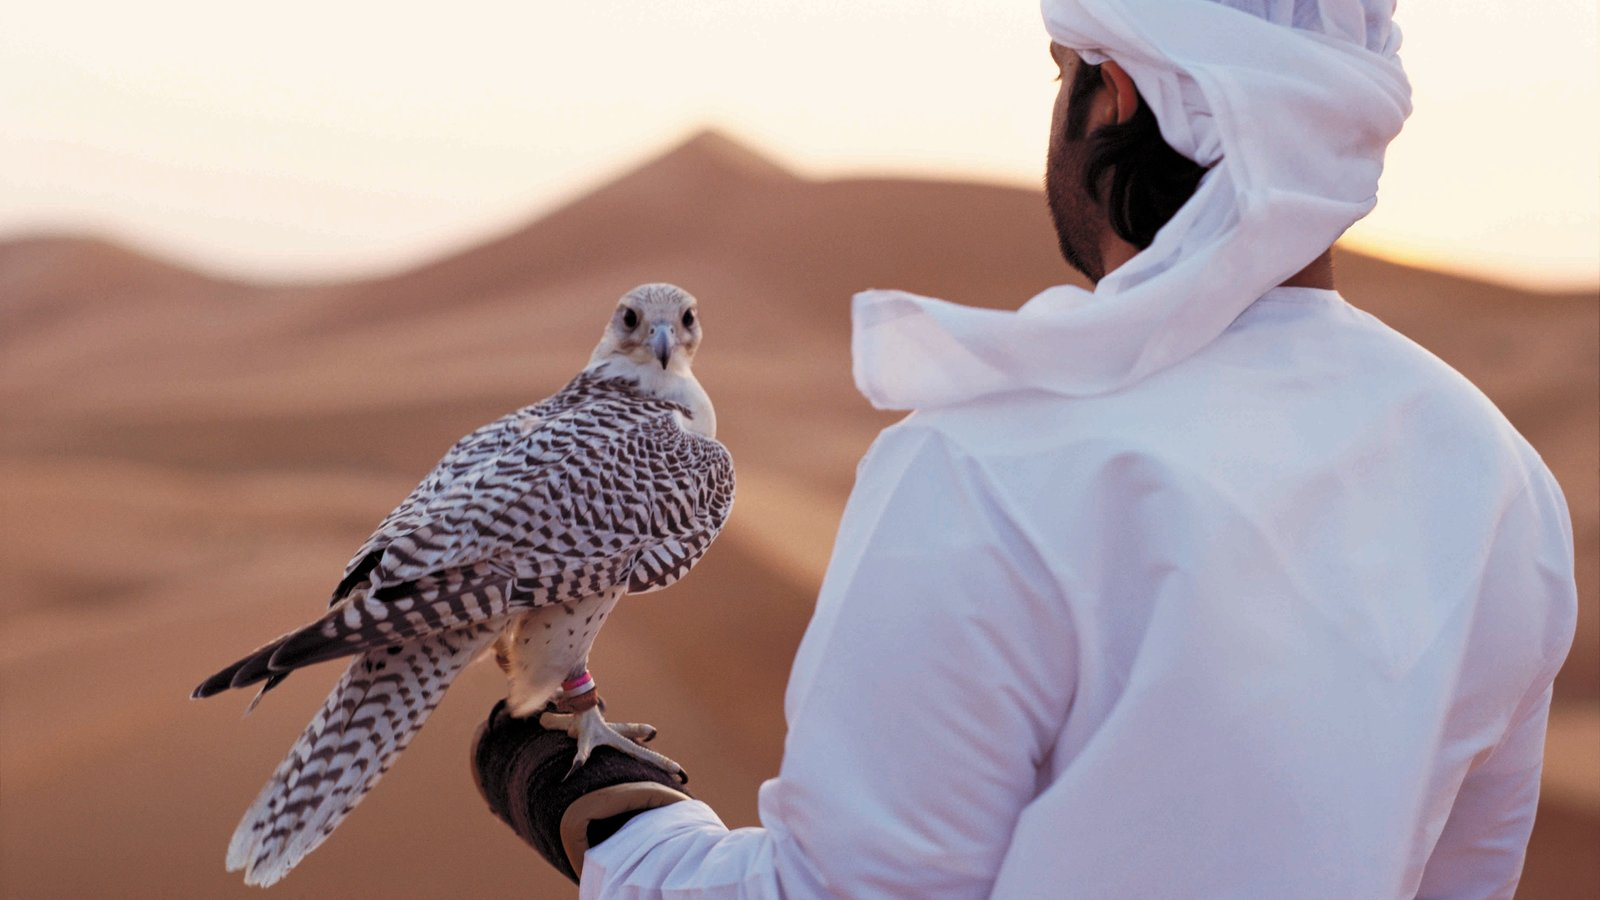 Yas Island featuring desert views and bird life as well as an individual male